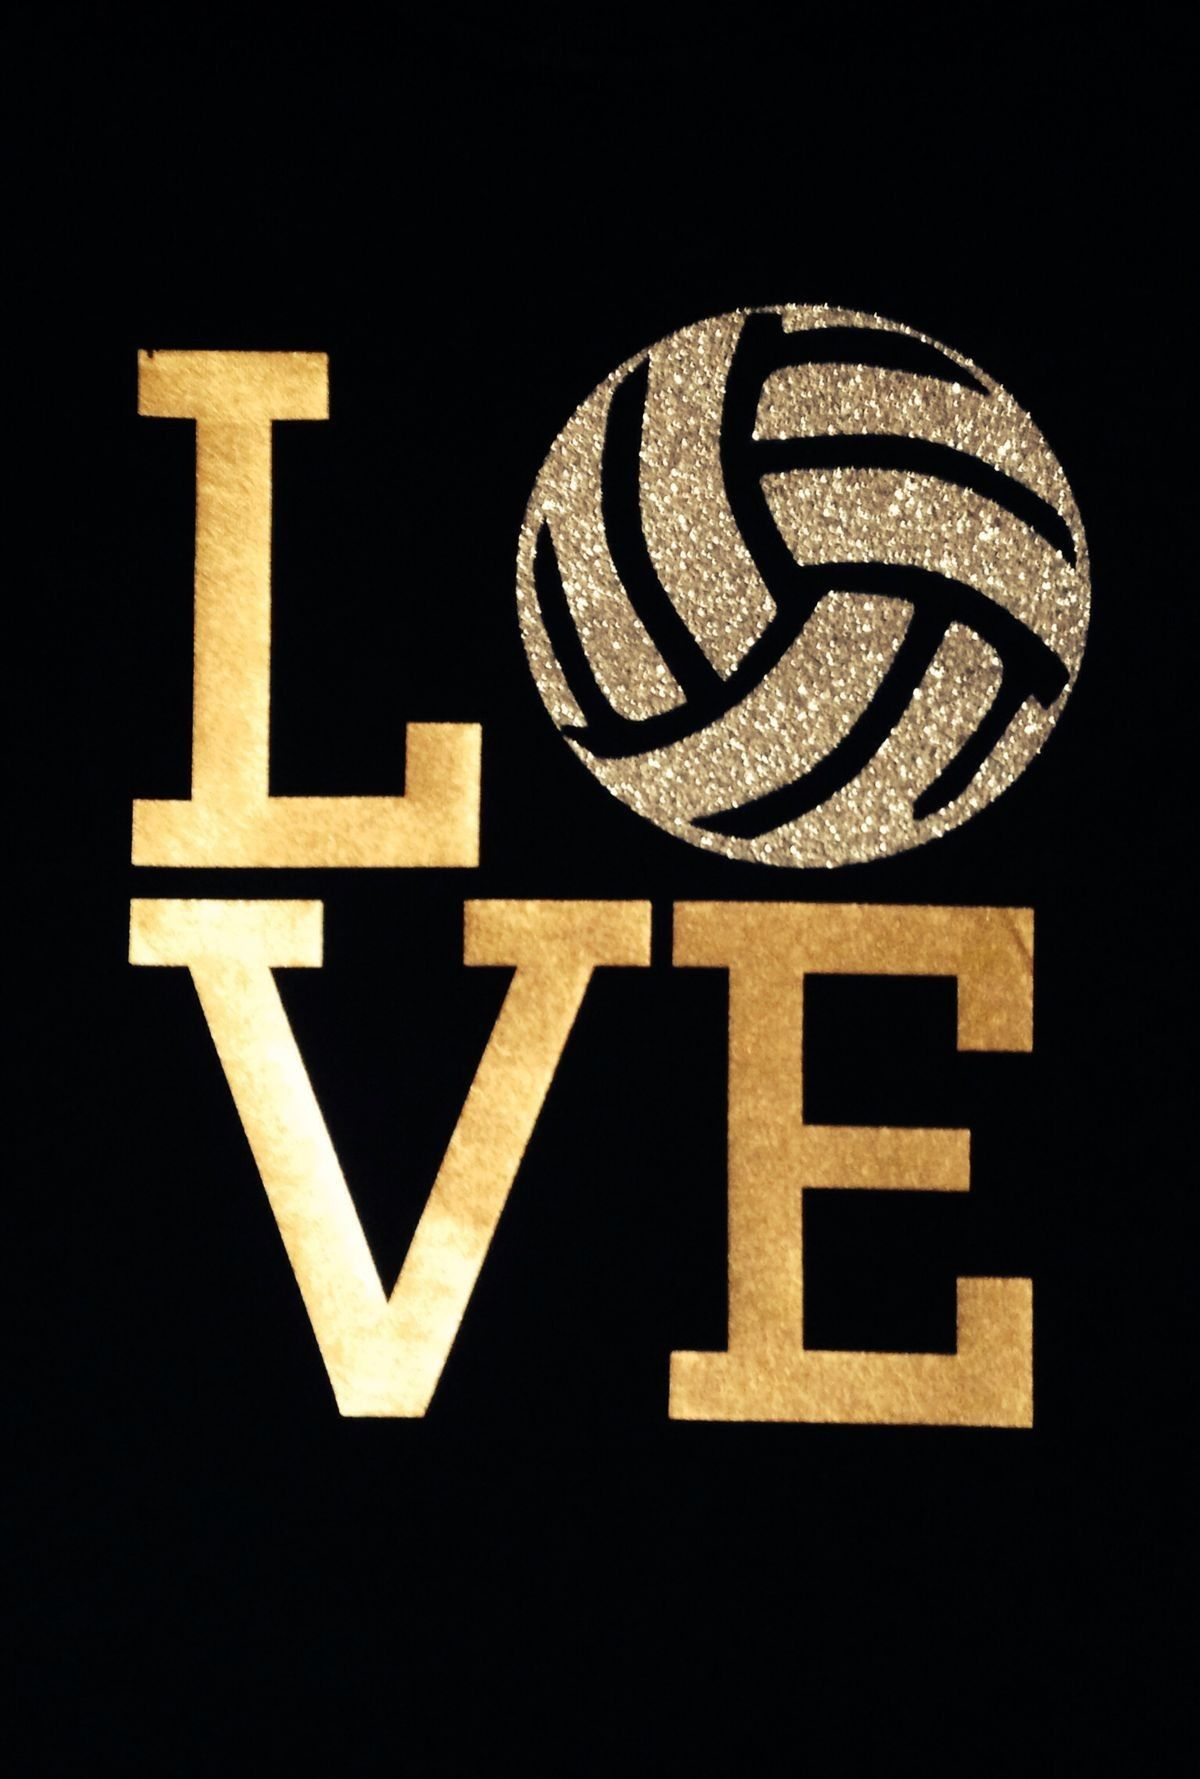 Pin By Mirandavolkmar On Rock Painting Volleyball Wallpaper Volleyball Quotes Volleyball Backgrounds